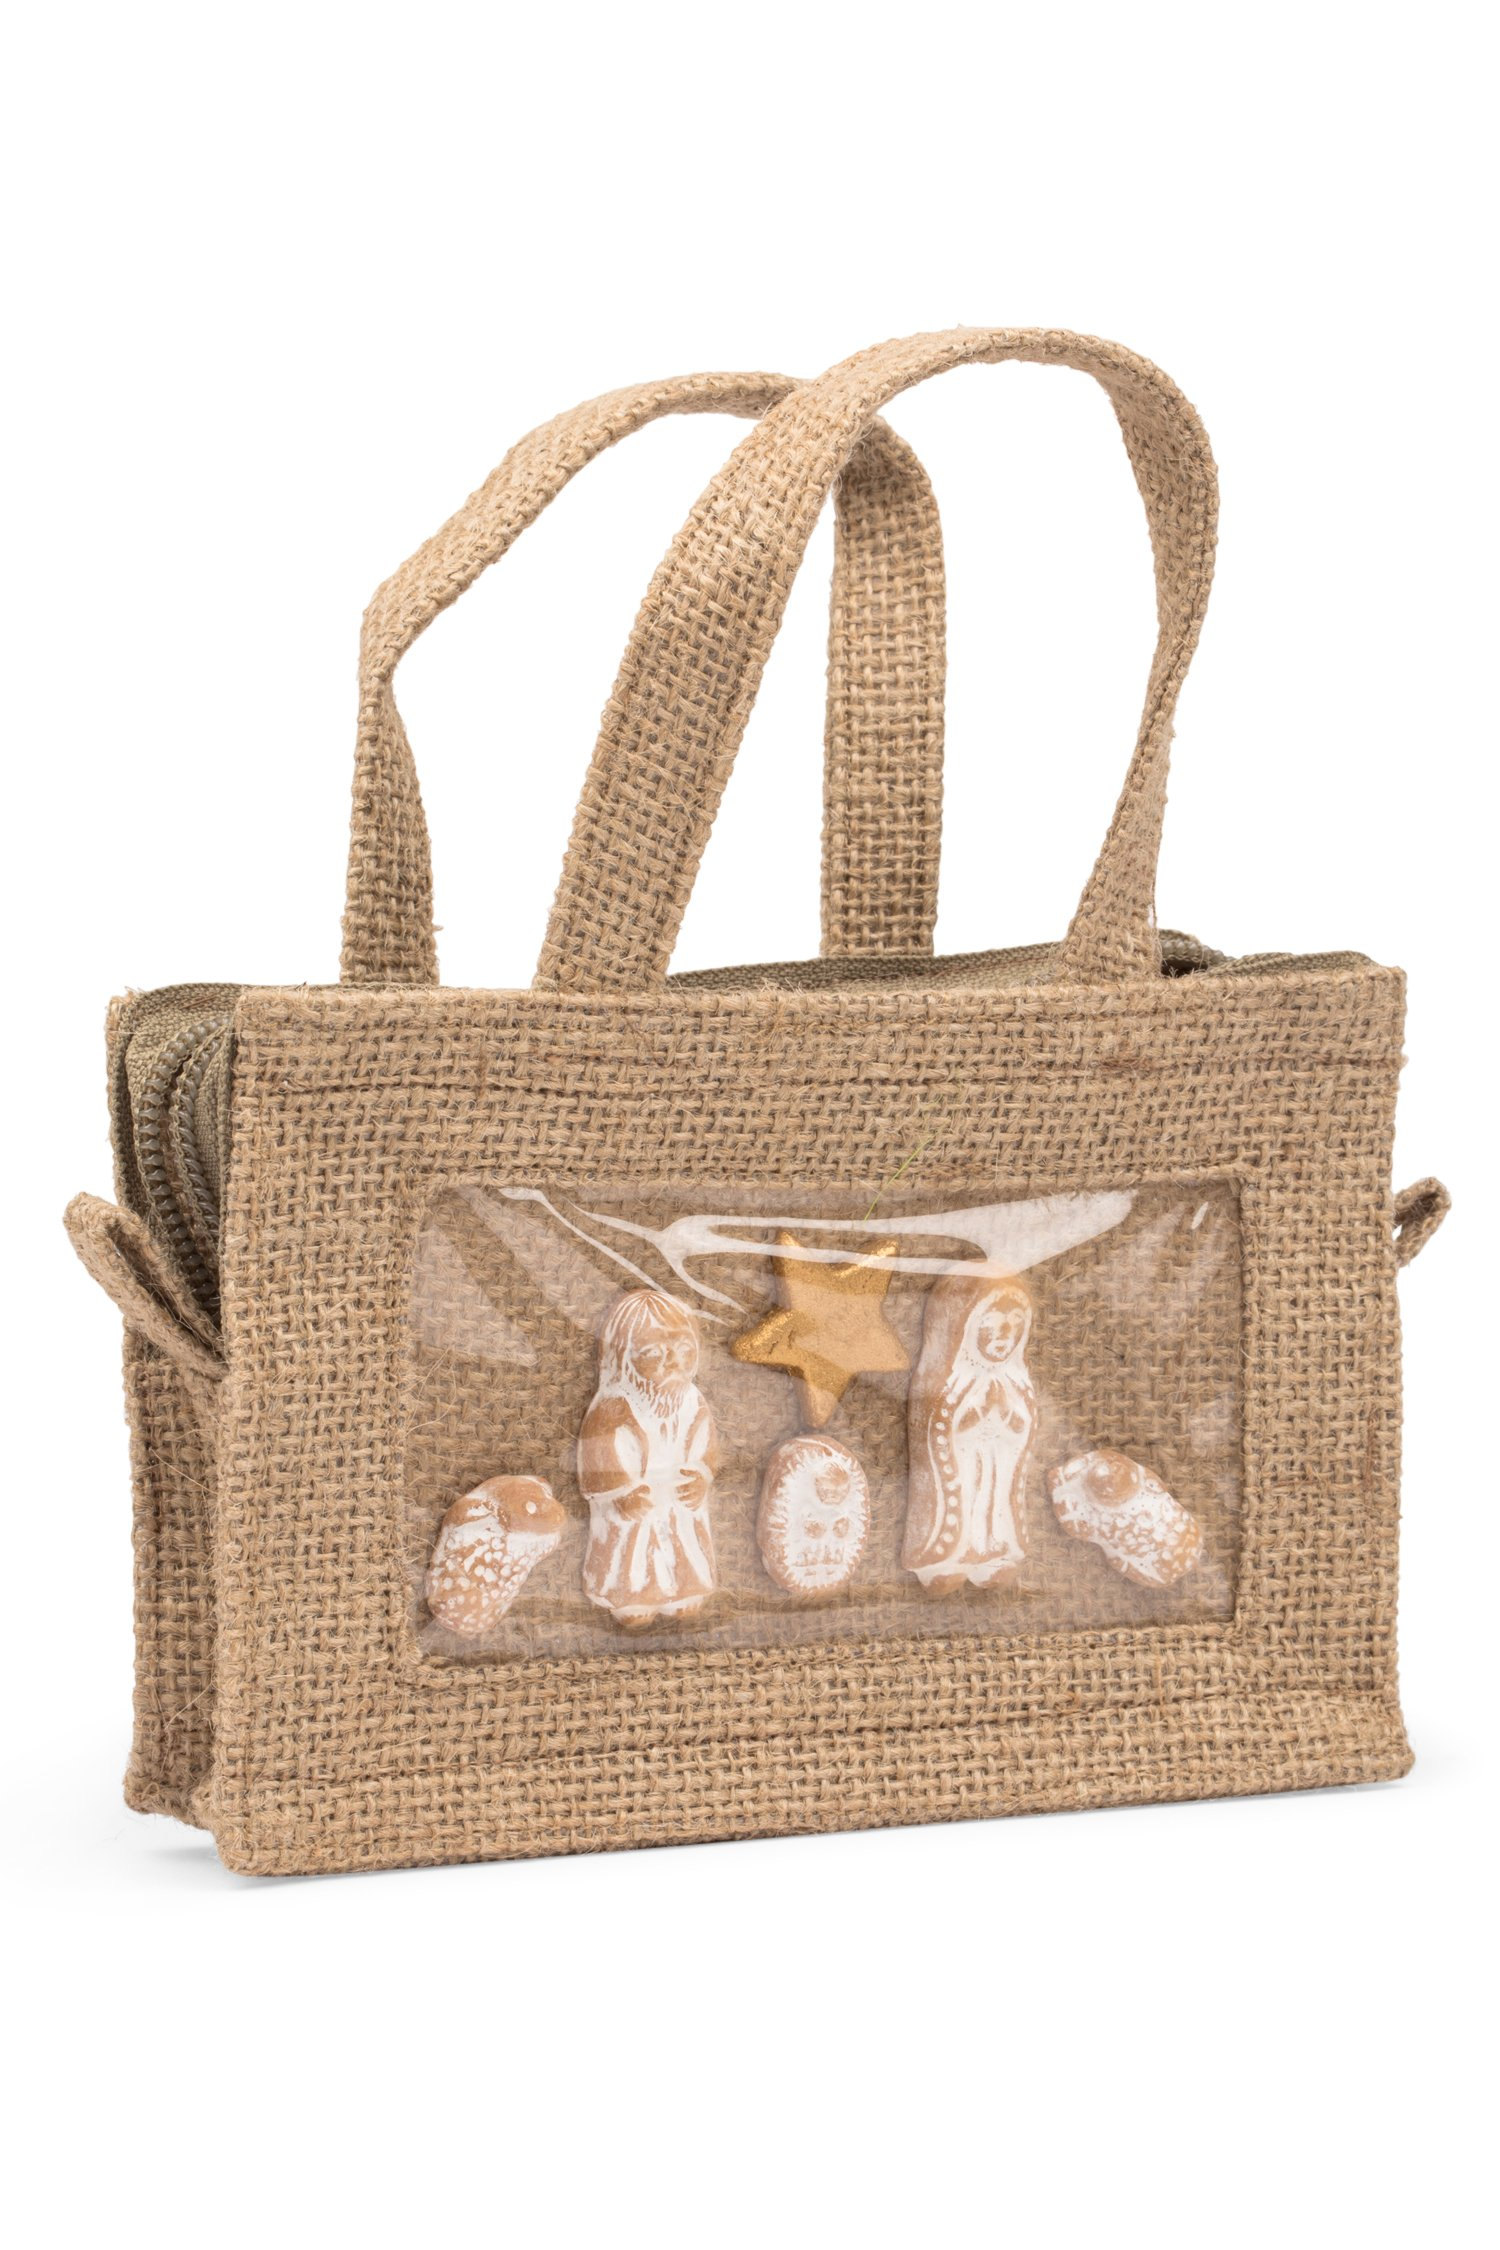 Ten Thousand Villages Jute Tote Bag With Nativity Scene 'Traveler's Nativity'